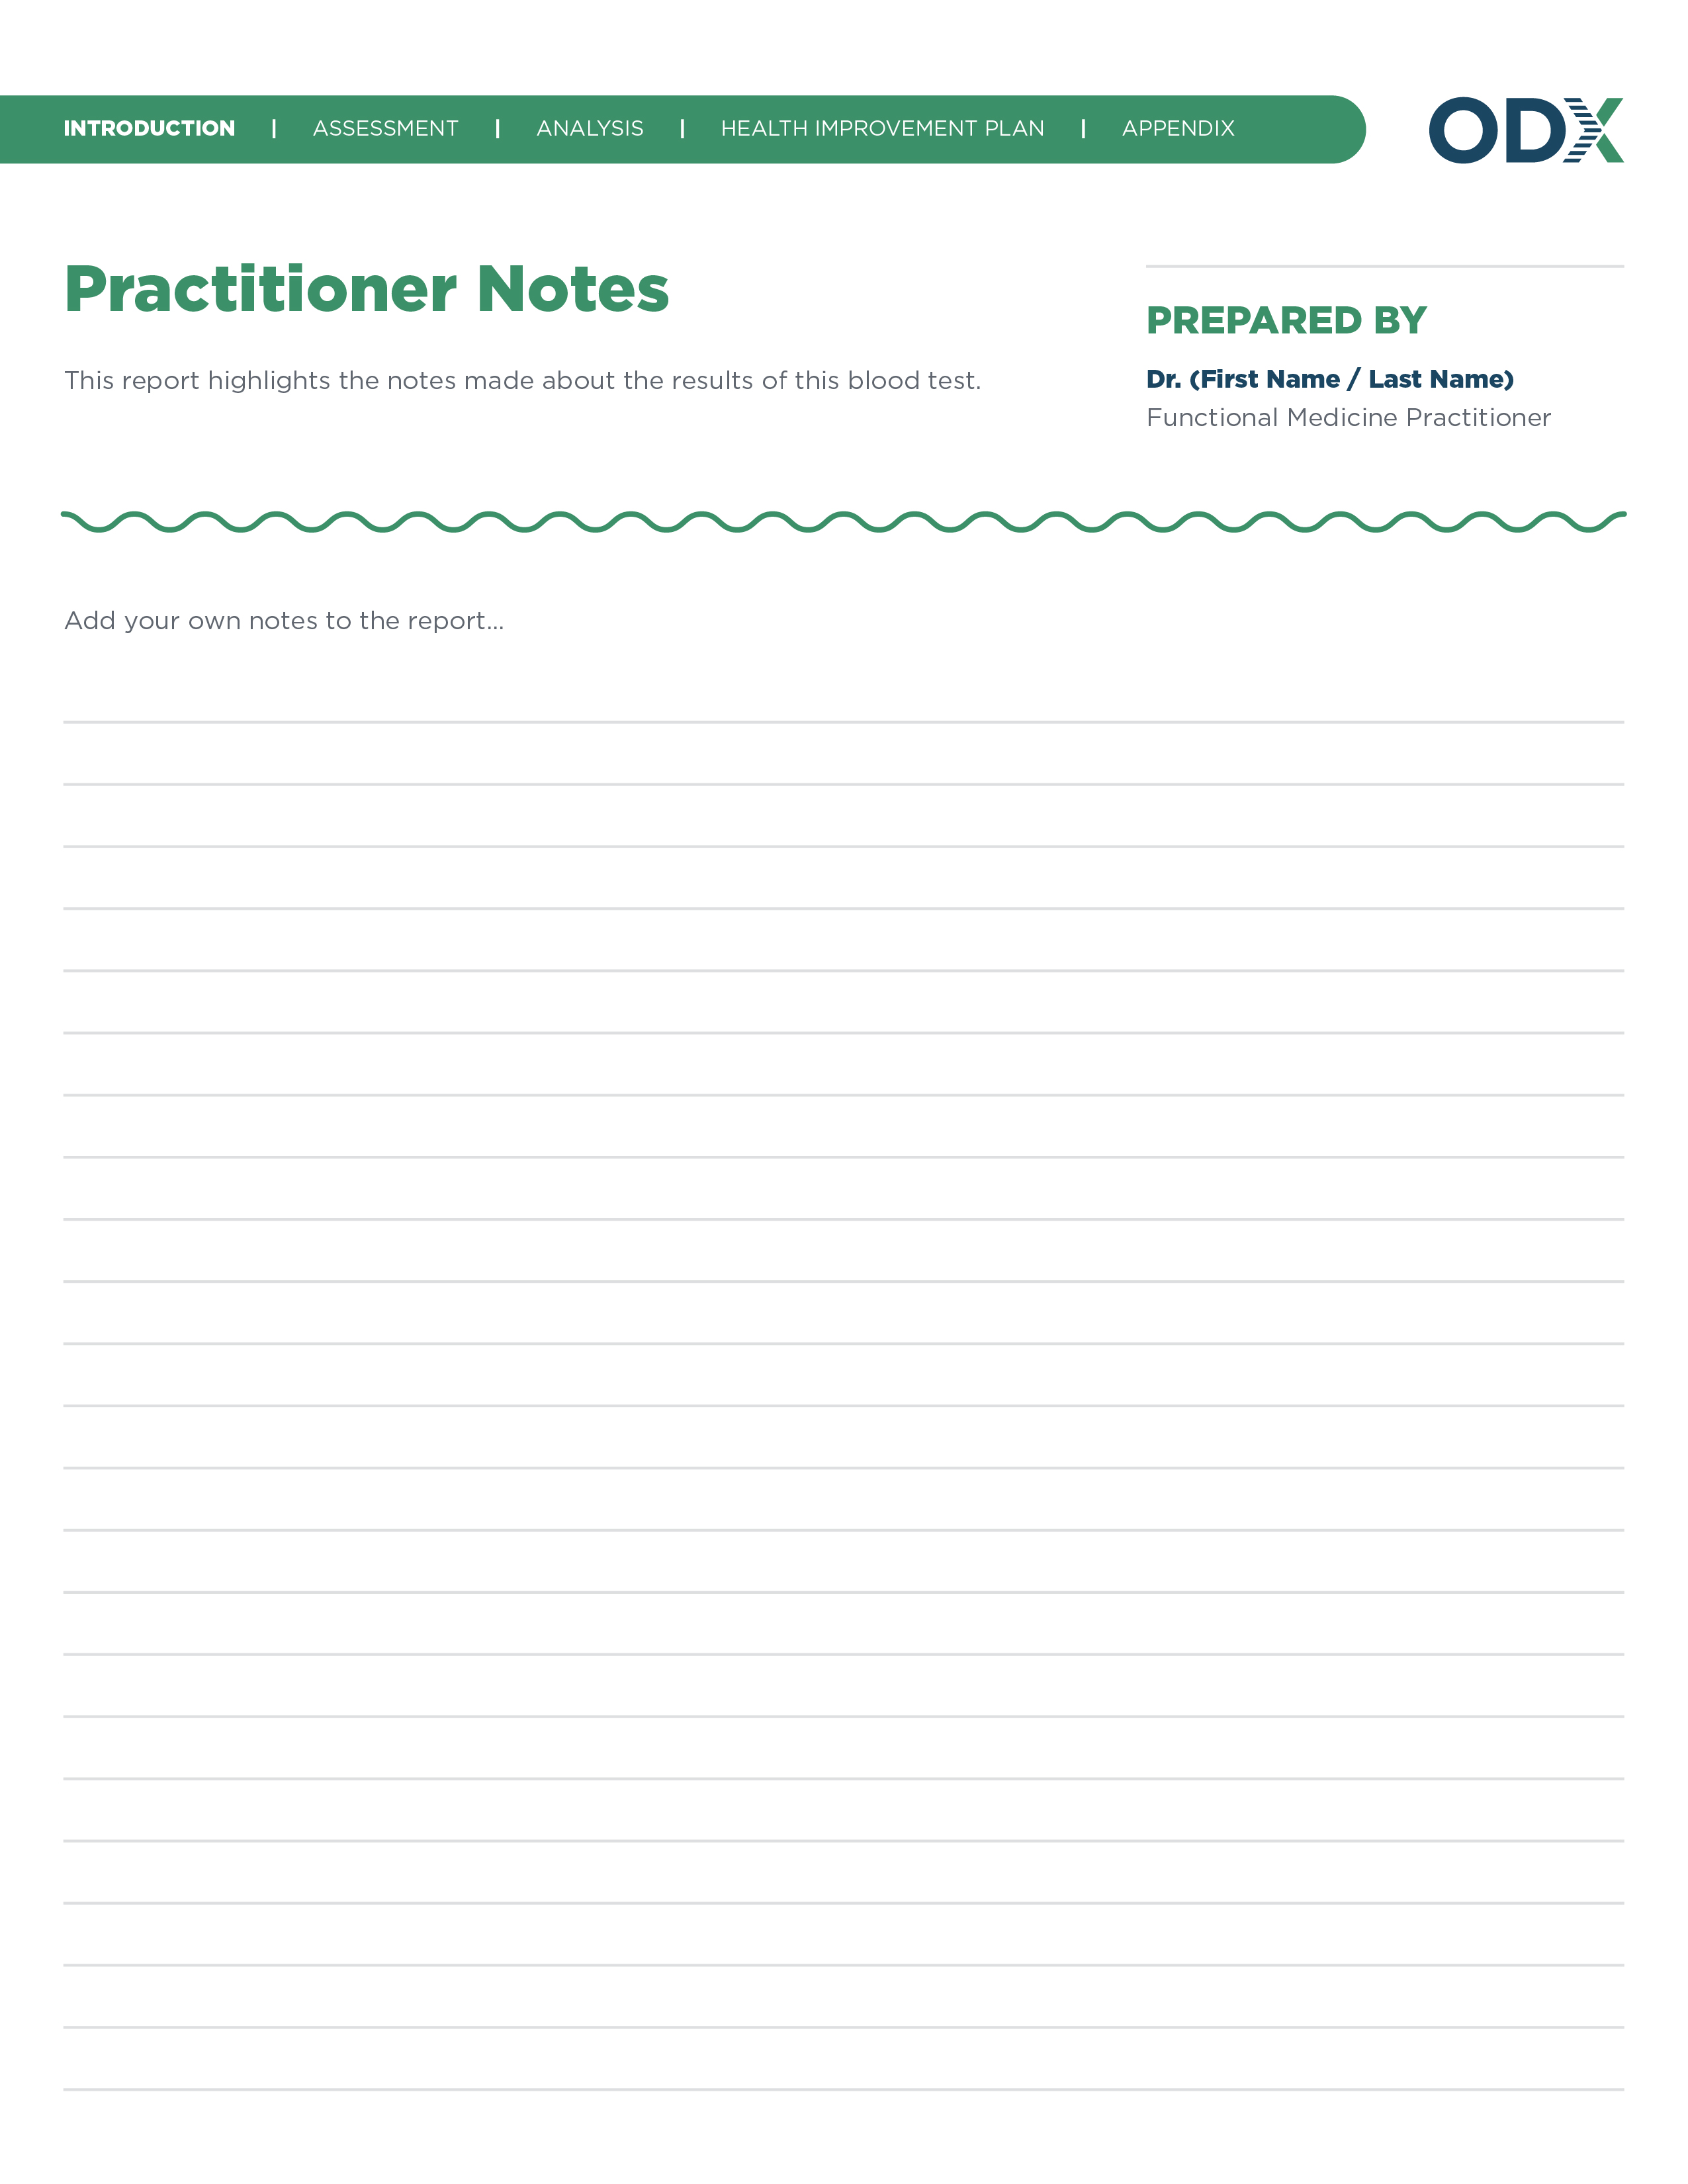 All Report Design for New Site_Practitioner Notes-